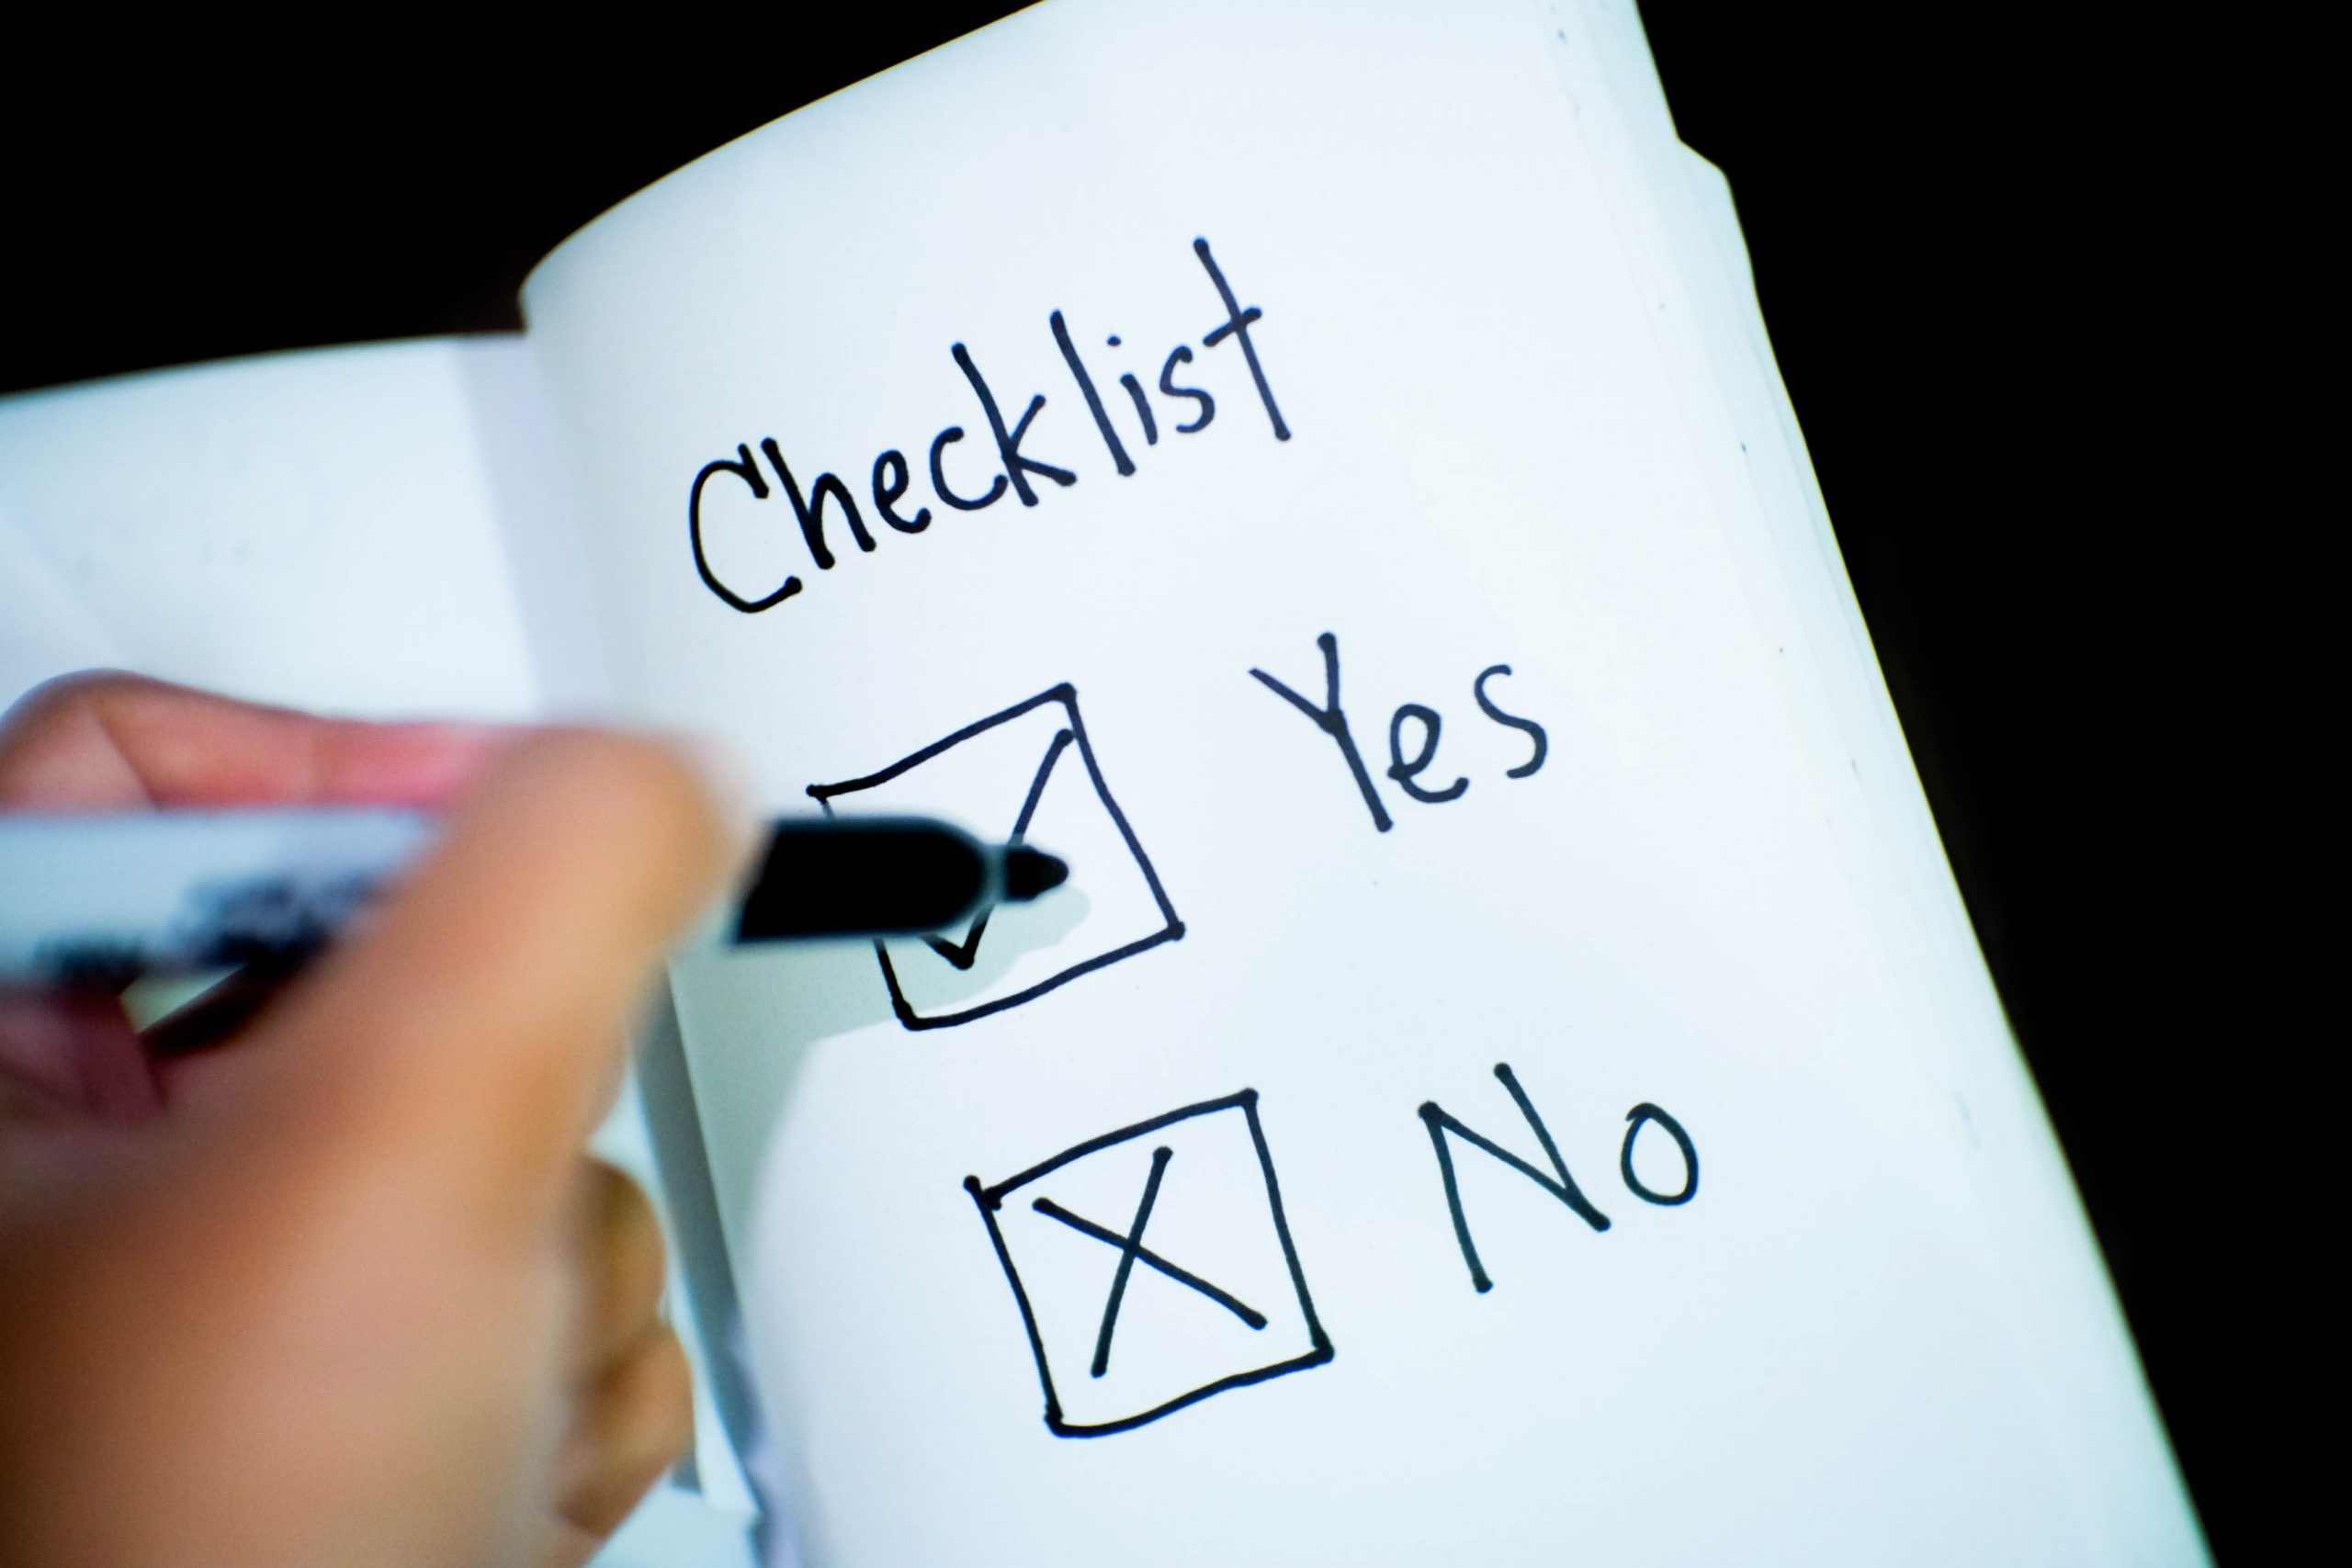 deciding-factors-yes-or-no-checklist-boxes